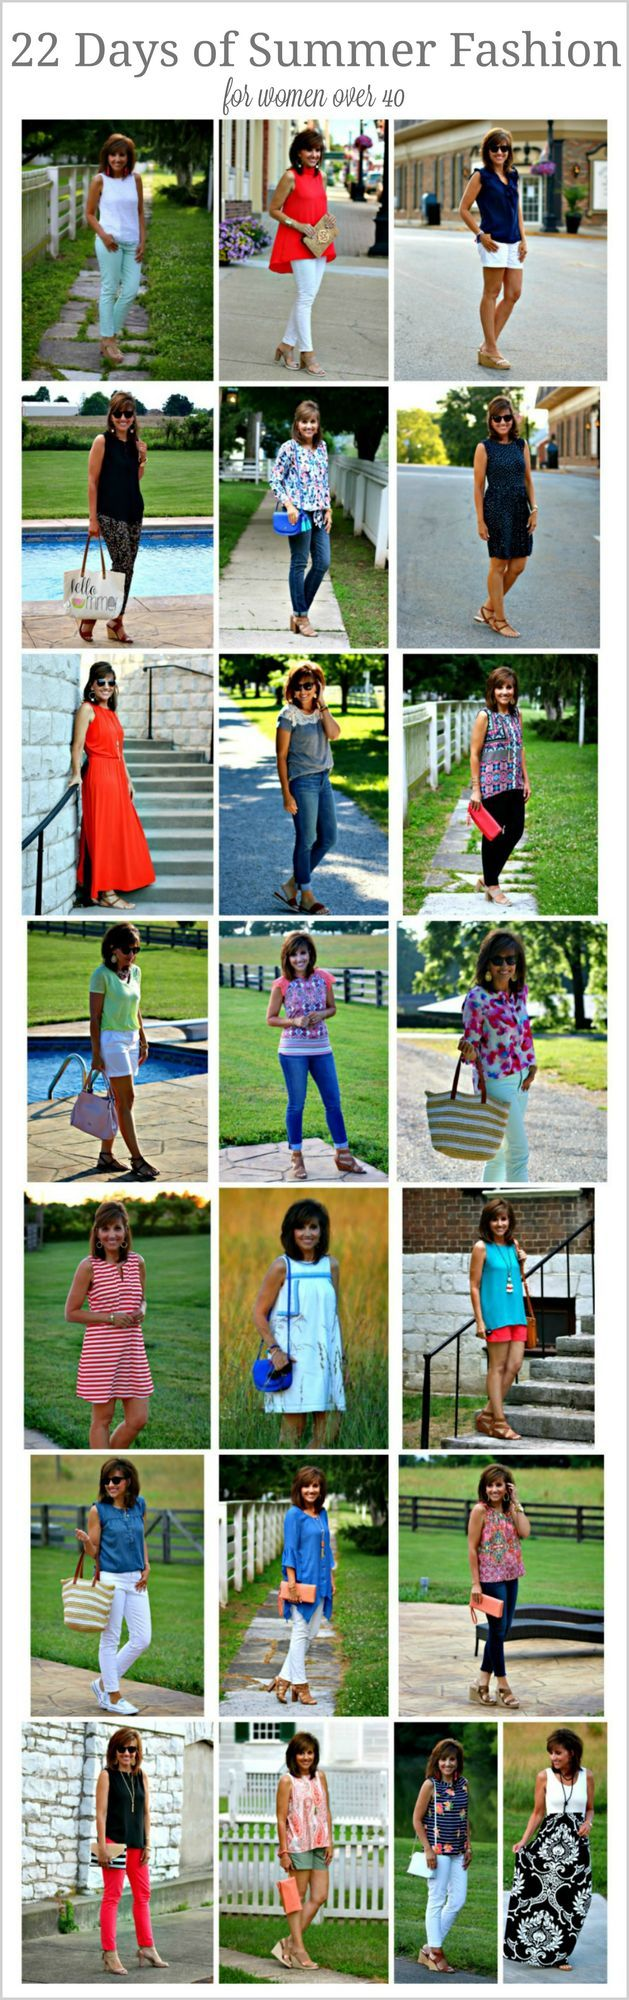 22 Days of Summer Fashion Recap